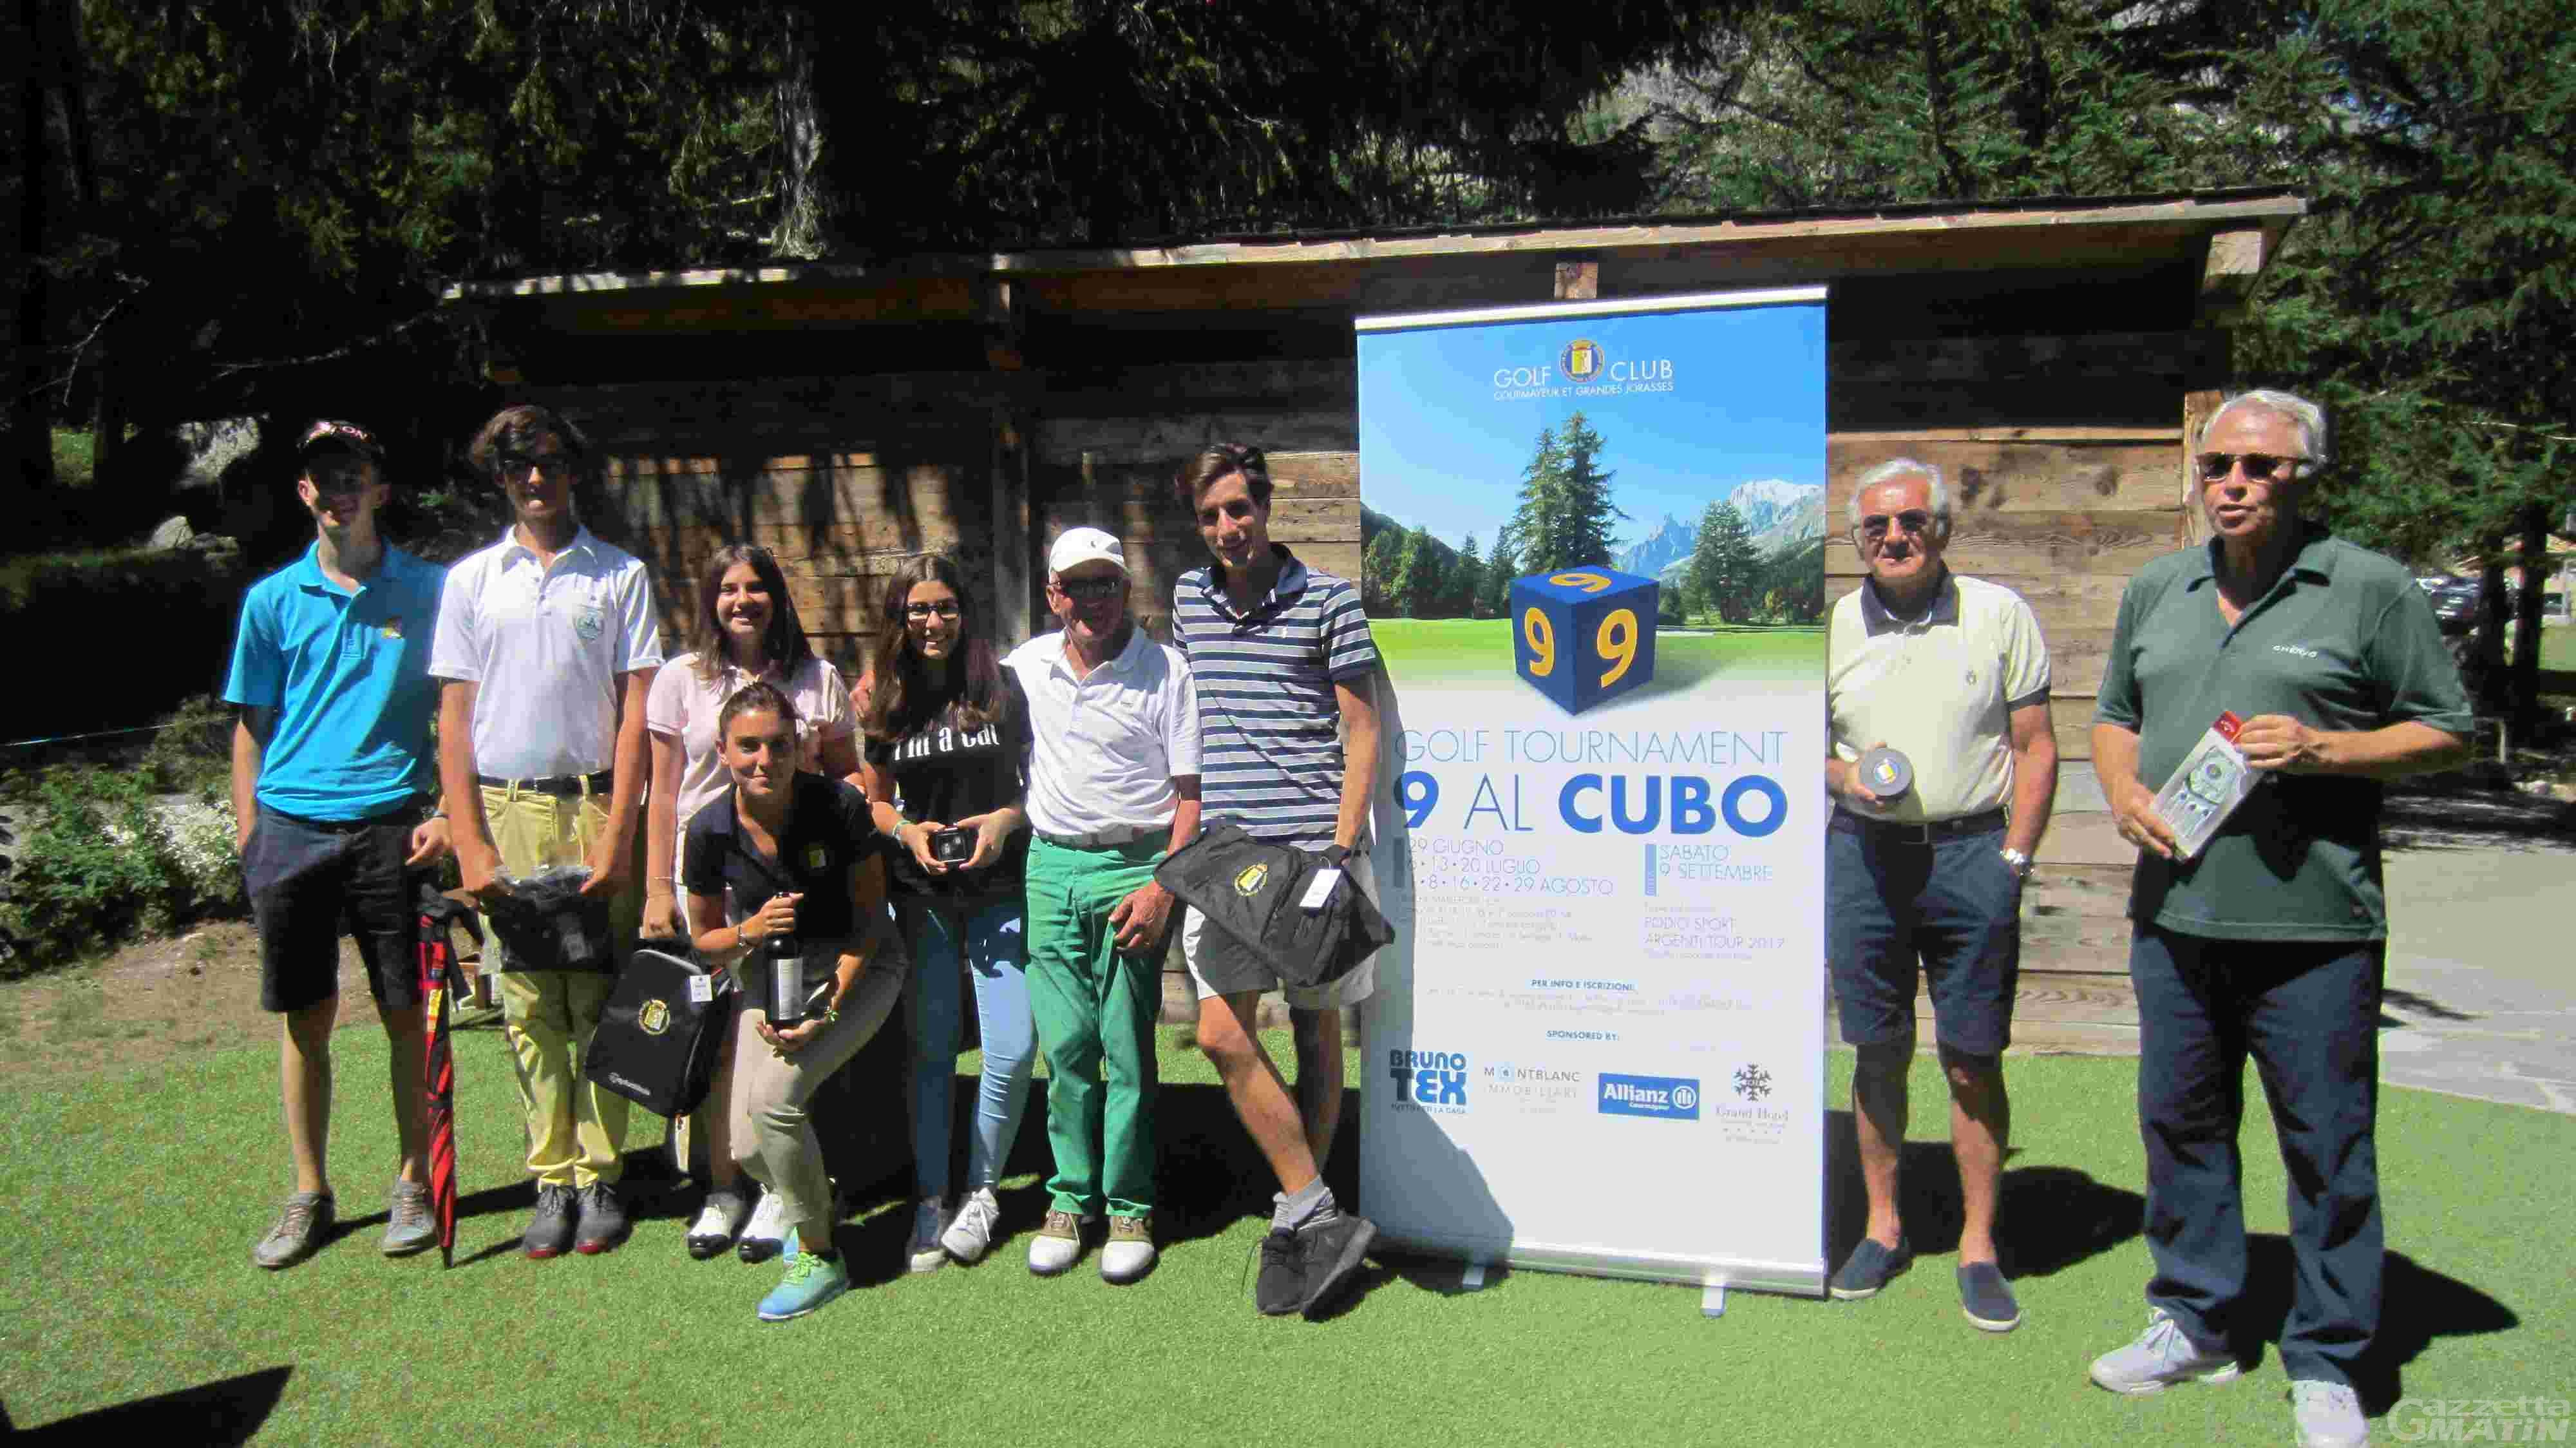 Golf: Nicolò Martini vince a Courmayeur